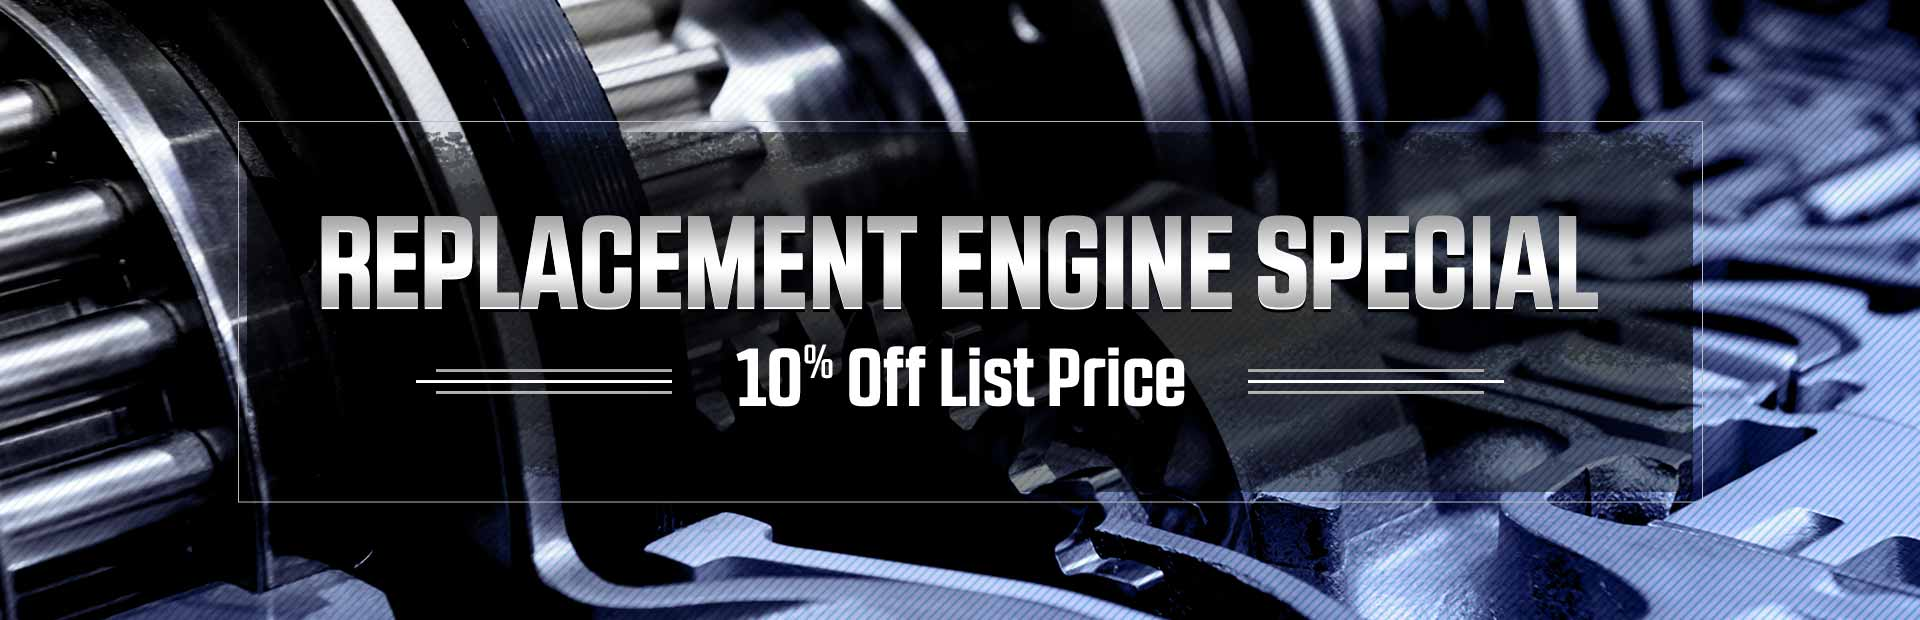 Replacement Engine Special: We're offering 10% off list price!